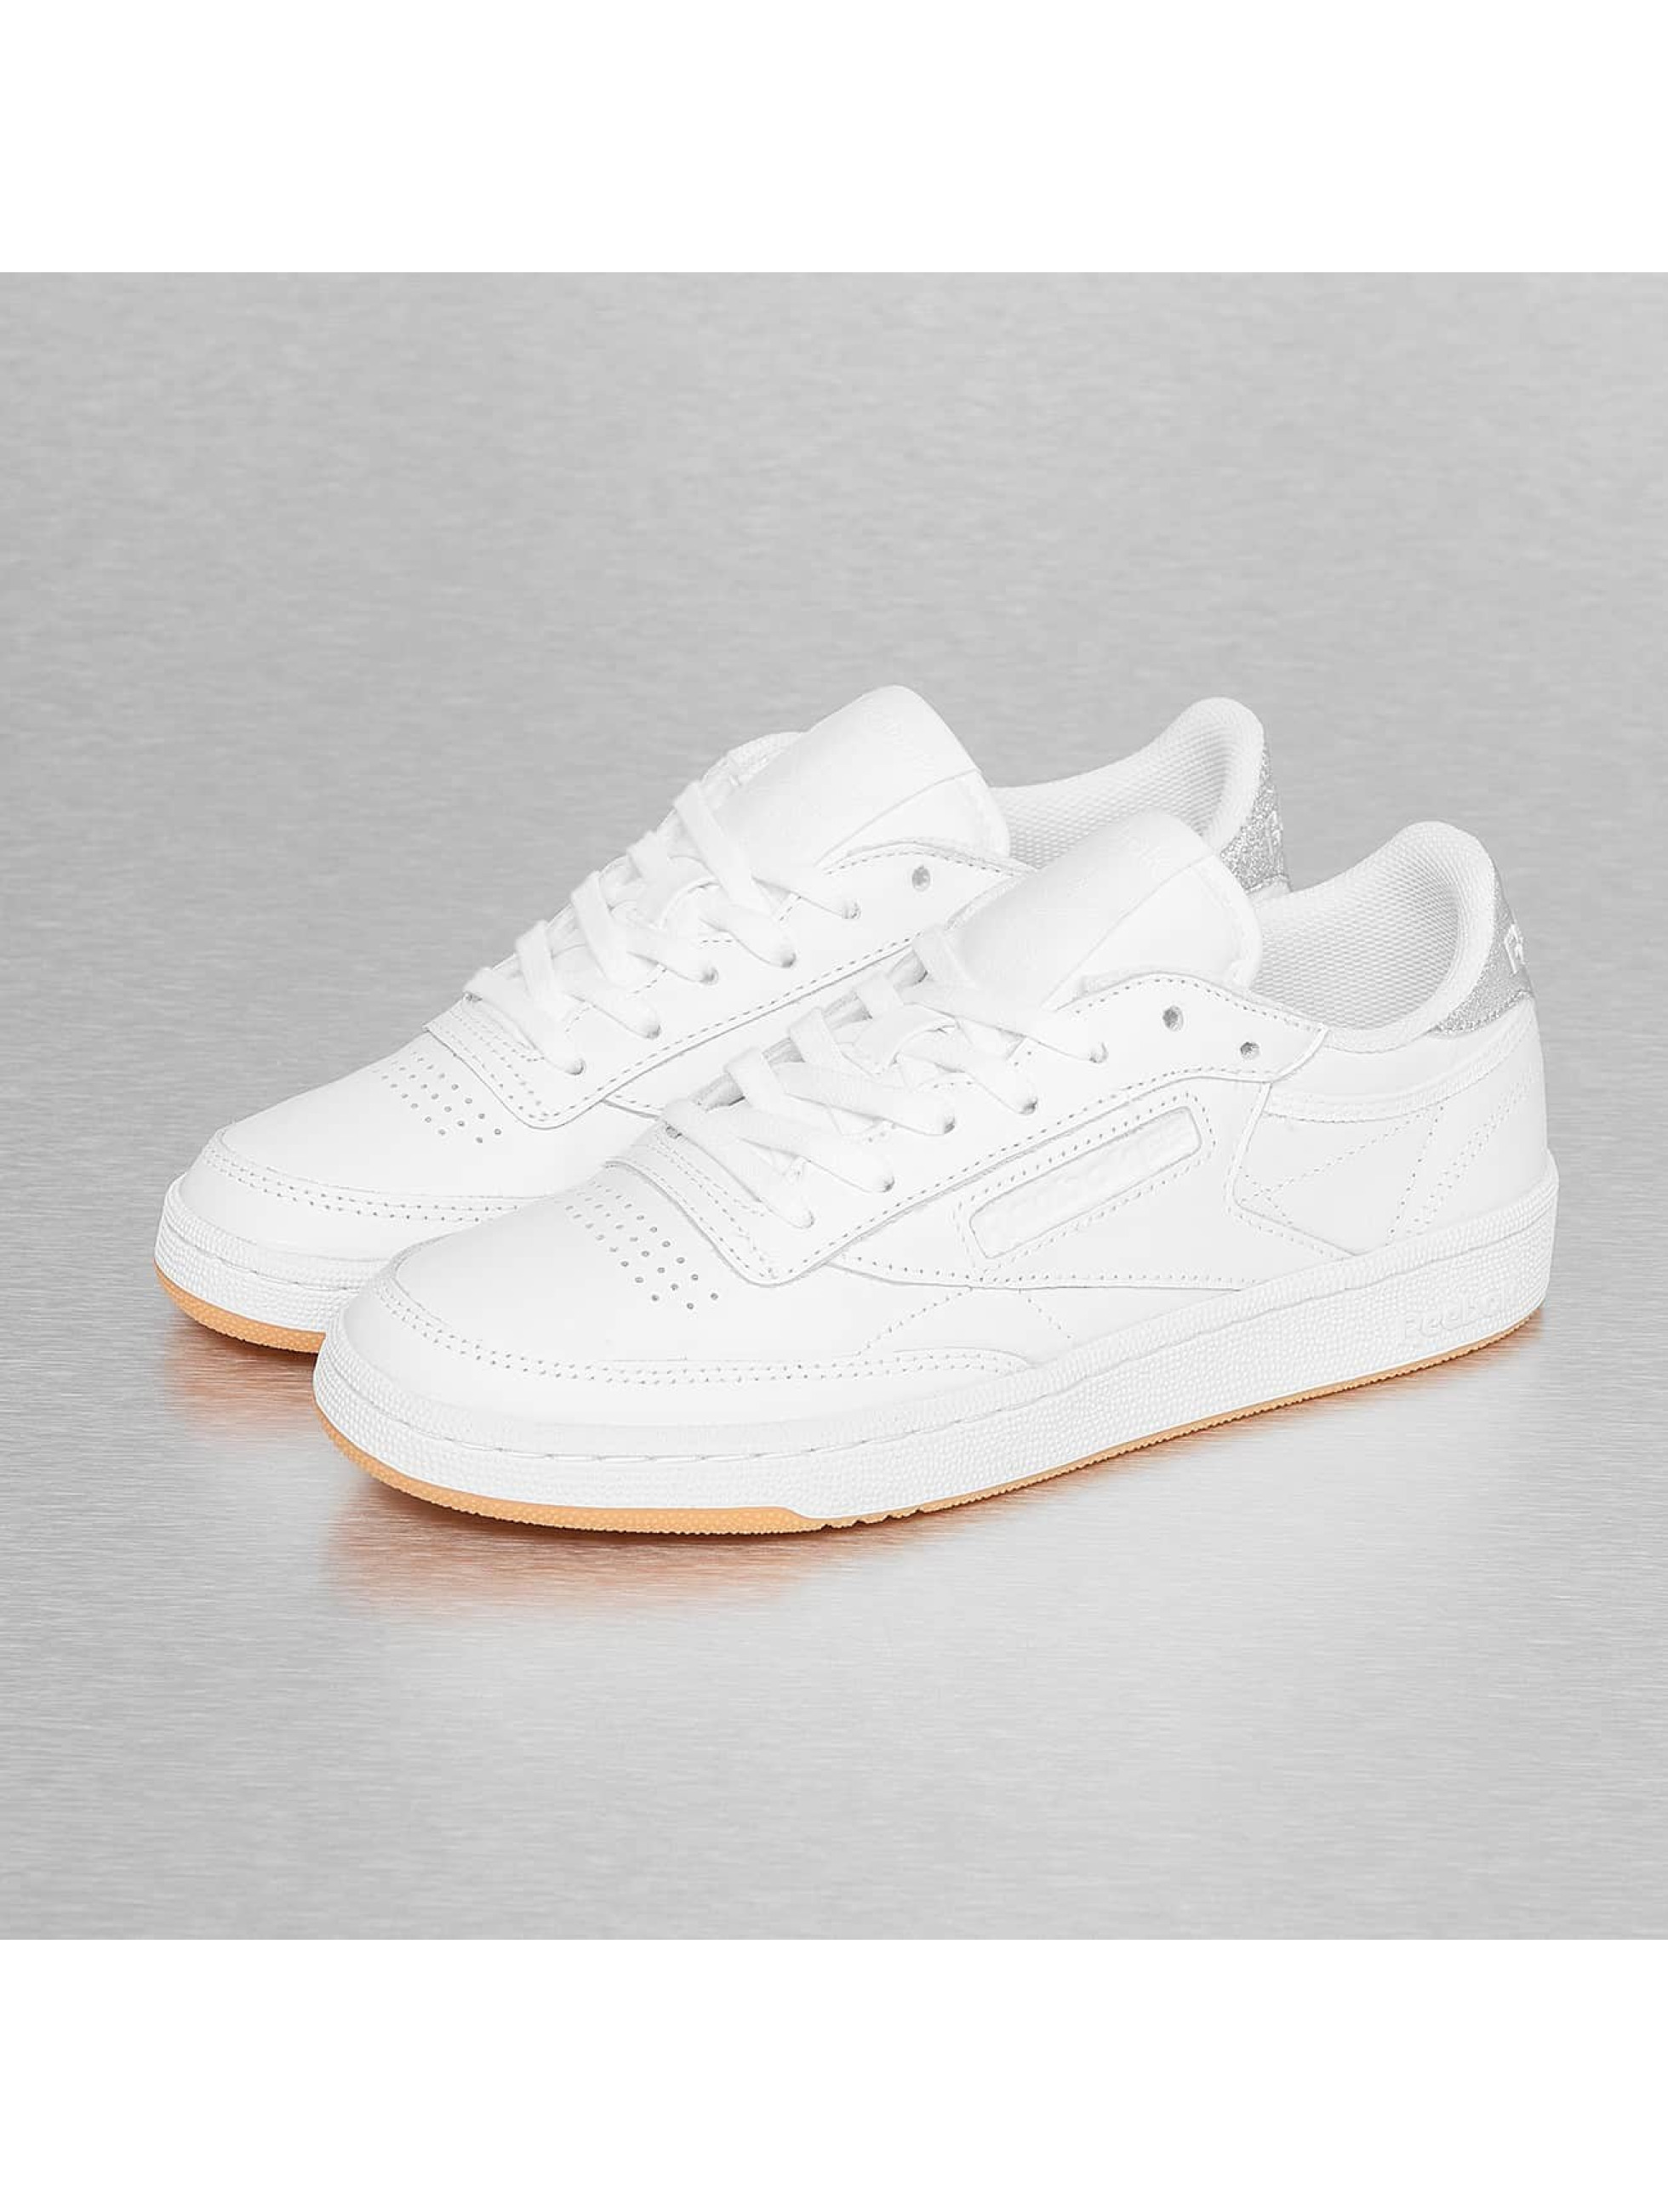 Reebok Chaussures / Baskets Club C 85 Diamond en blanc